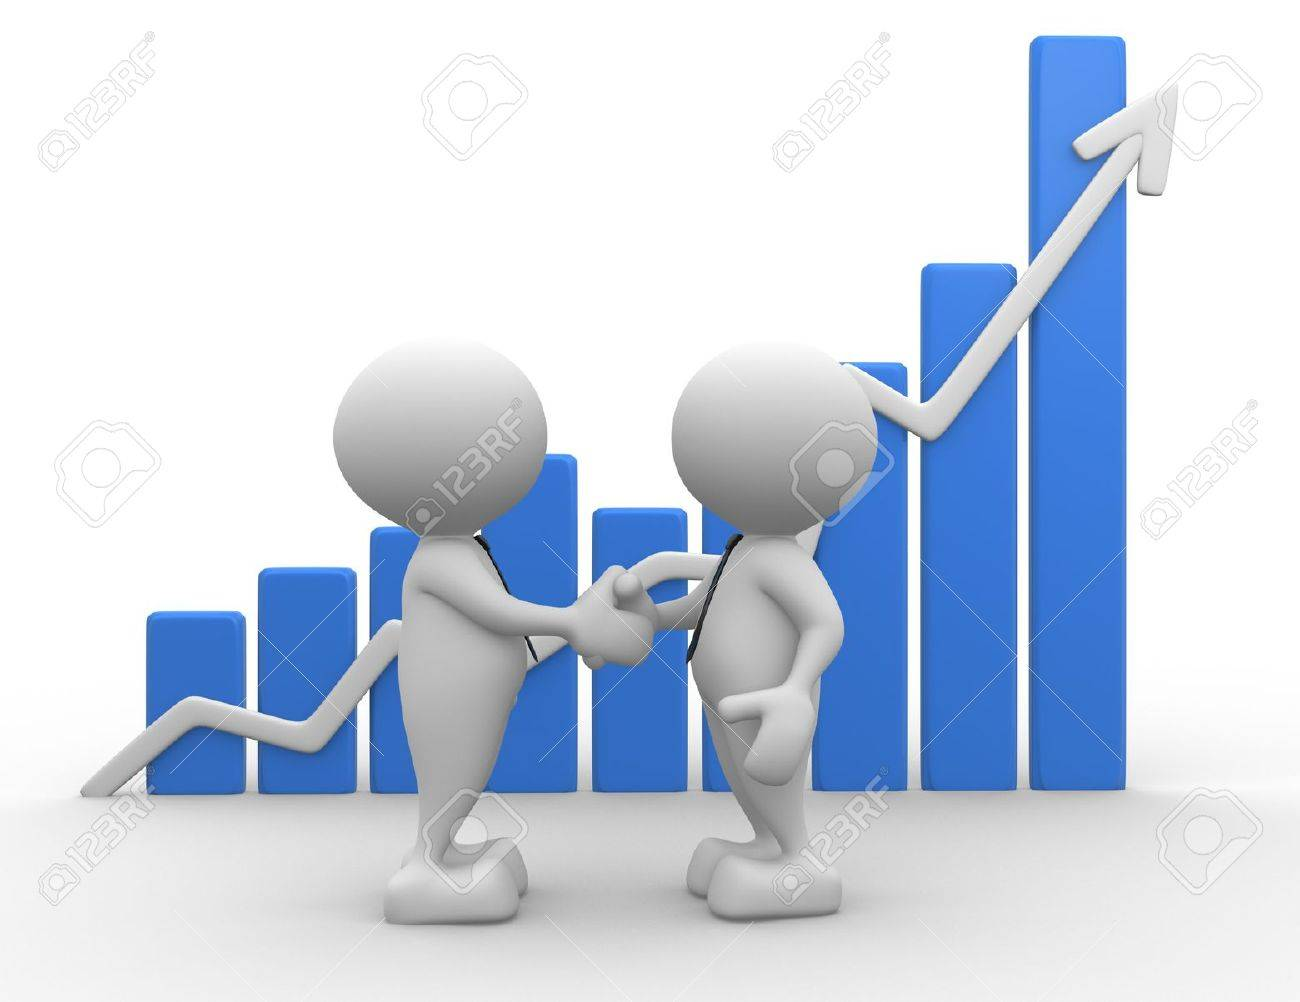 3d people - men, person shake hands with growing graph Stock Photo - 16945495